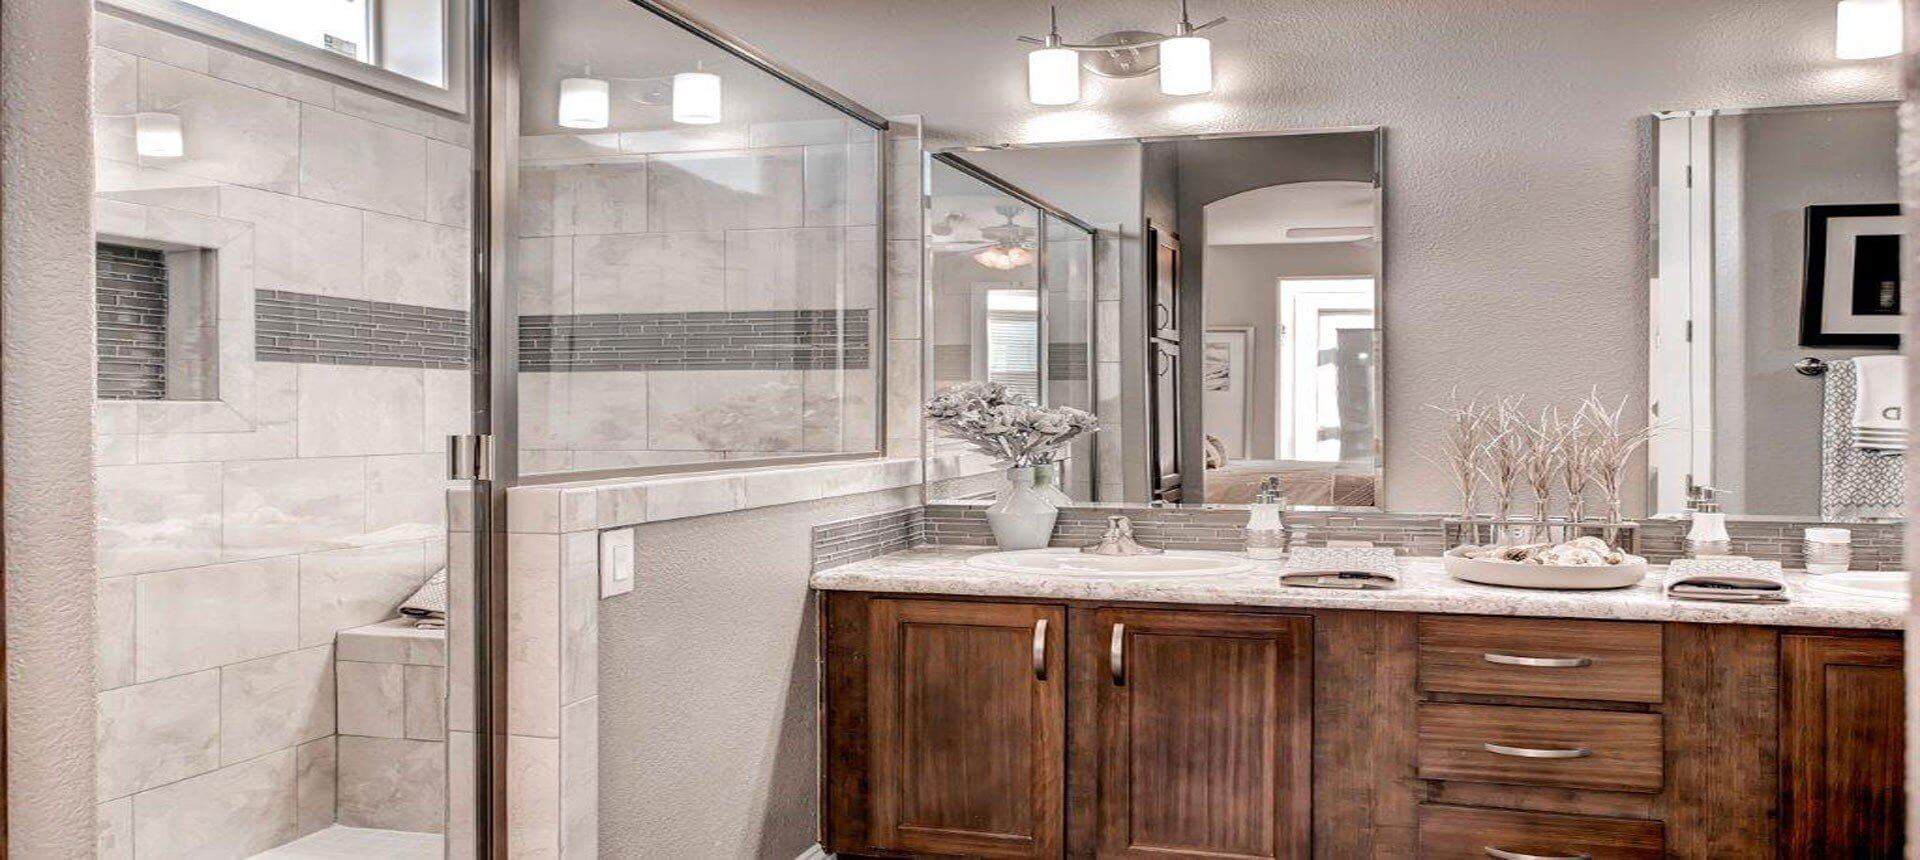 Manufactured Homes Wholesale Manufactured Homes